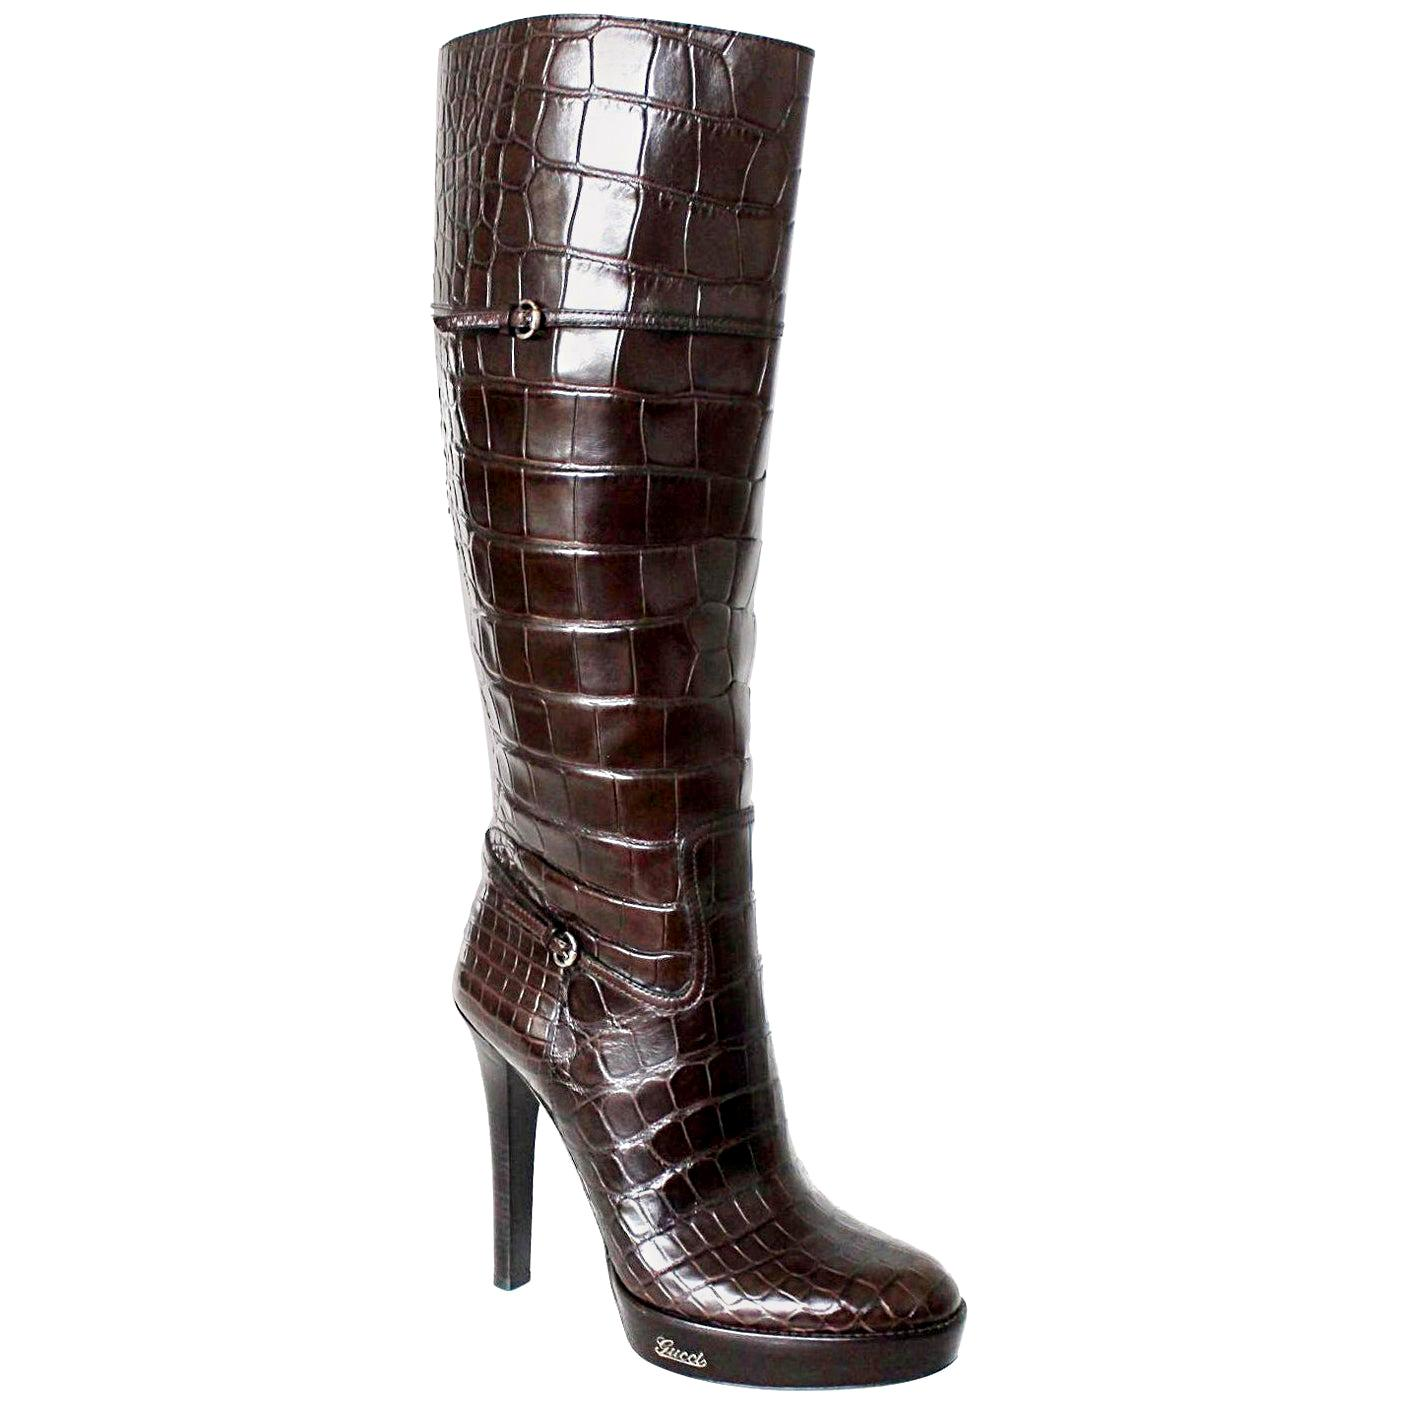 NEW Exotic Gucci Brown Extra Tall Alligator Skin High Heels Boots